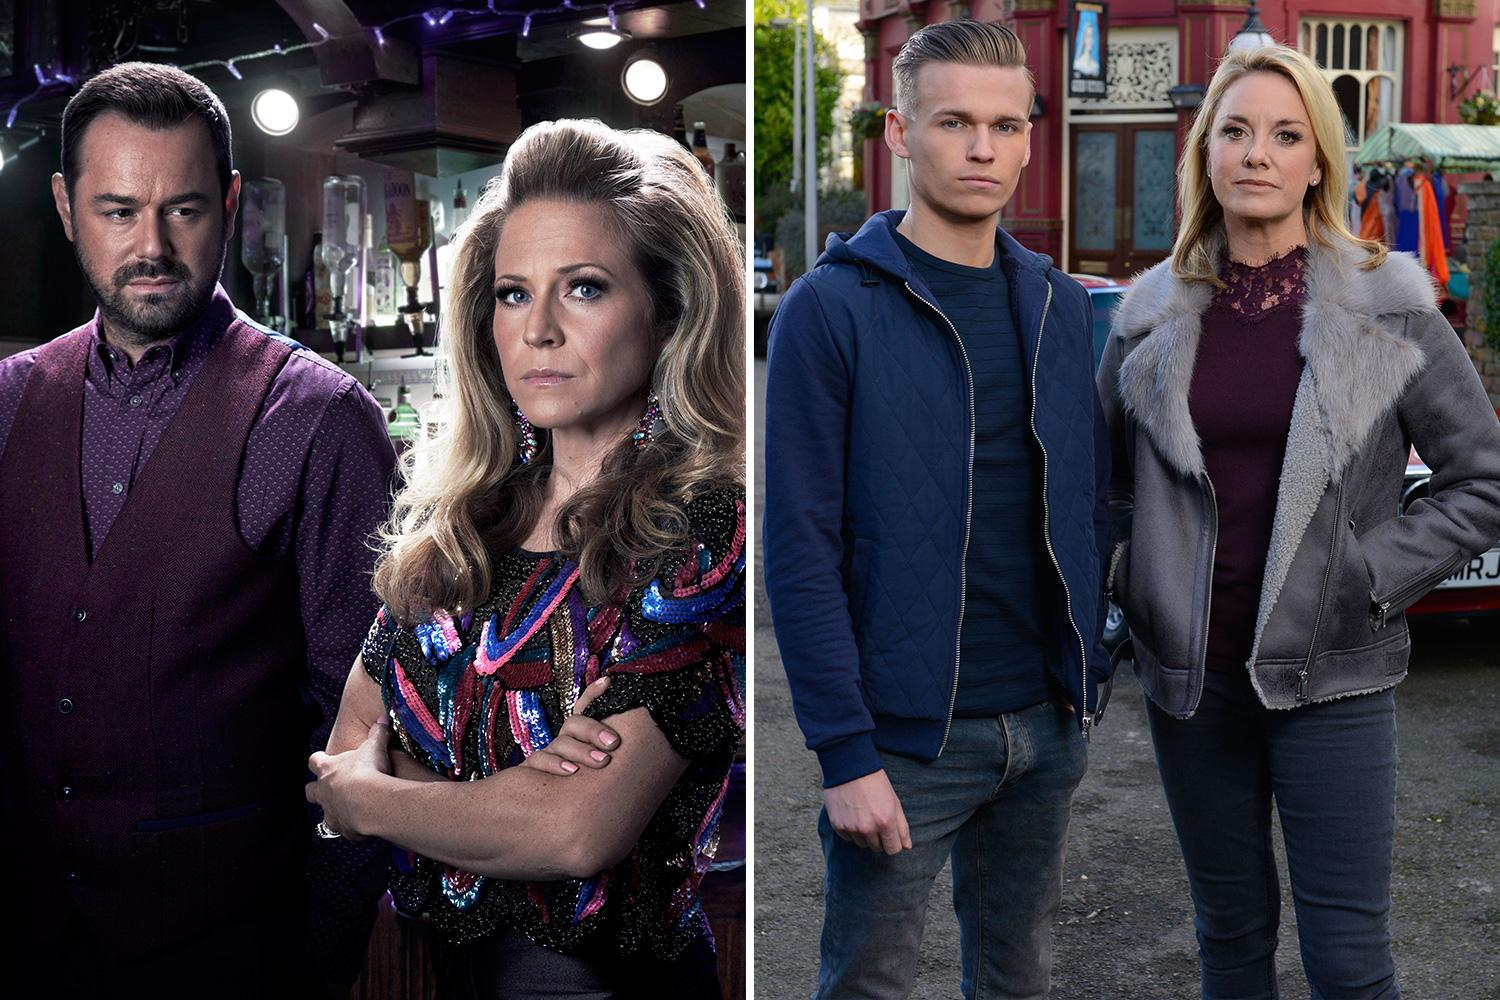 Eastenders spoilers: Mick Carter AND Mel Hunter will have 'blood on their hands' after dramatic Christmas Day episode, hints show boss